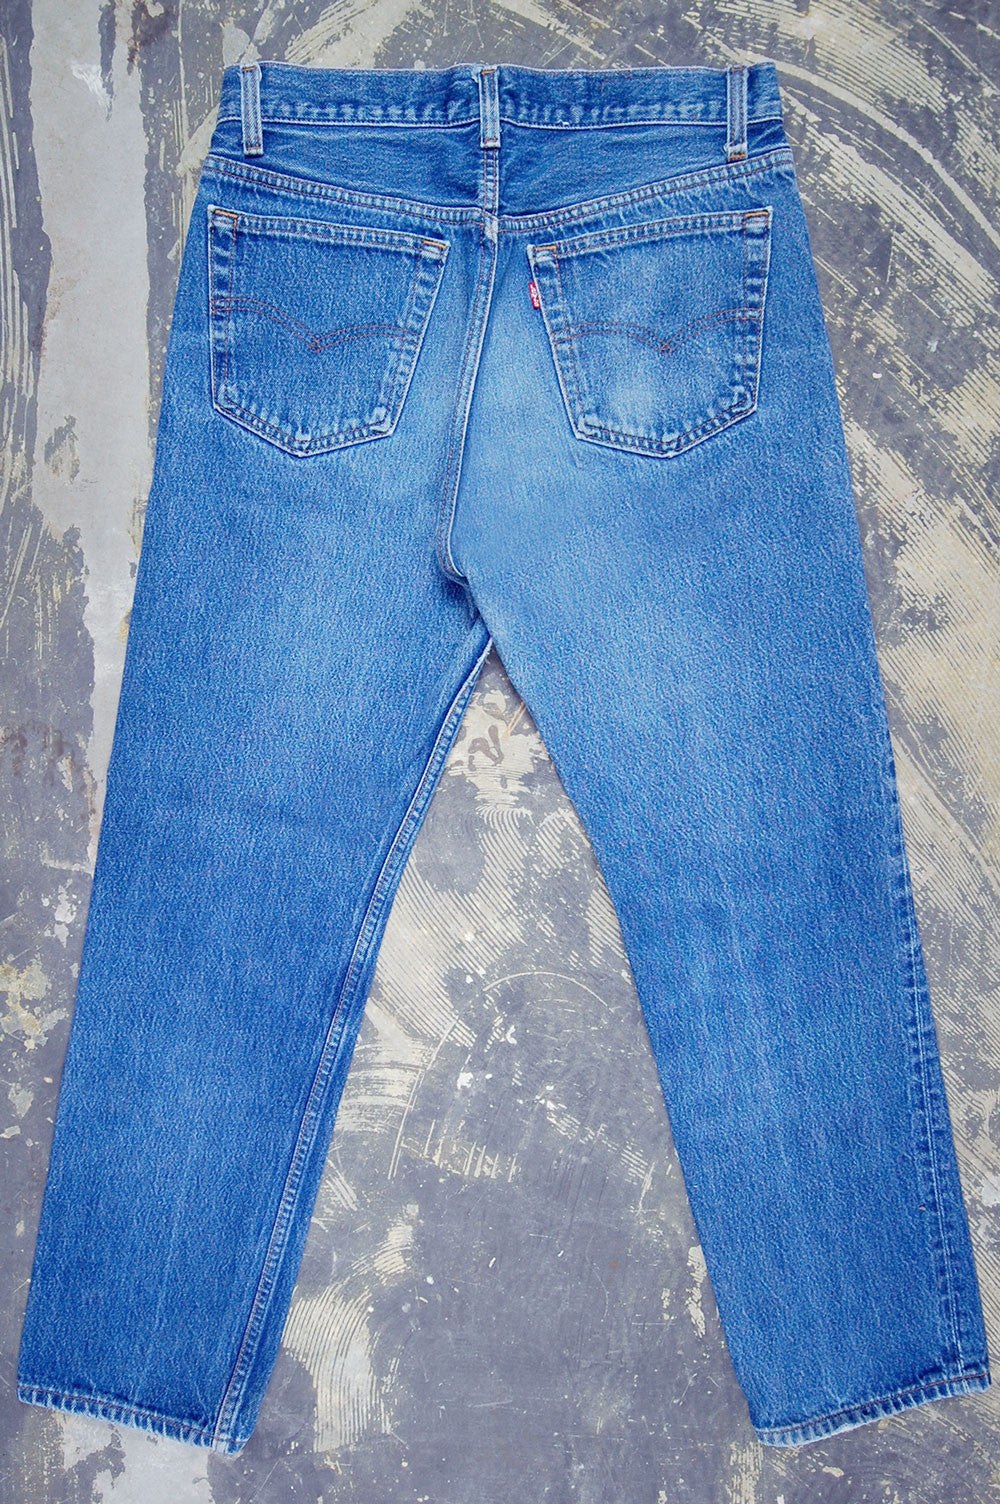 Vintage Levi's 501 USA Super Whiskered Denim Jeans